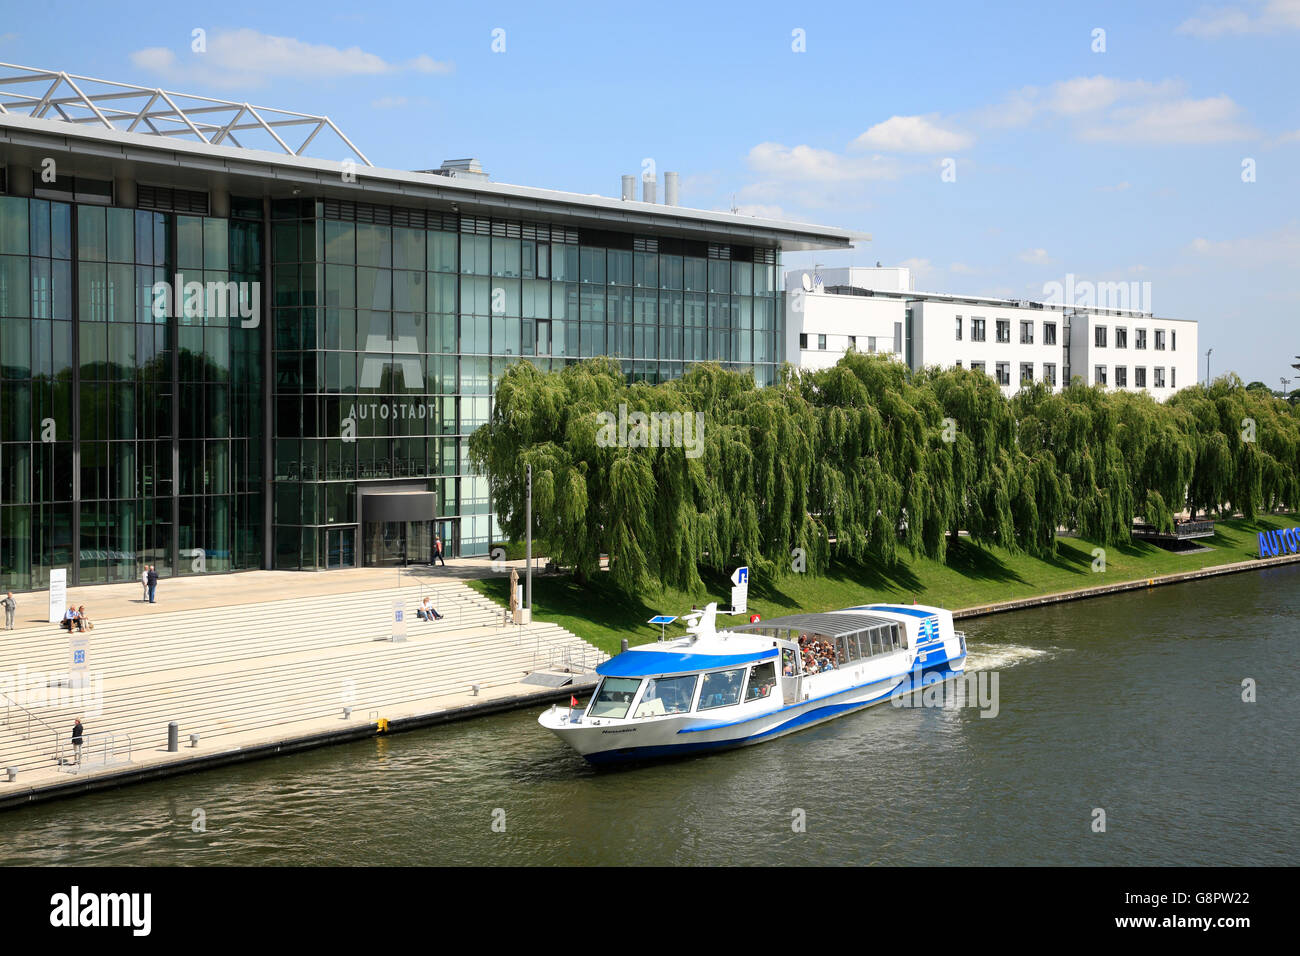 Wolfsburg, jetty of  VW Autostadt  at Mittelland canal, Lower Saxony, Germany, Europe - Stock Image